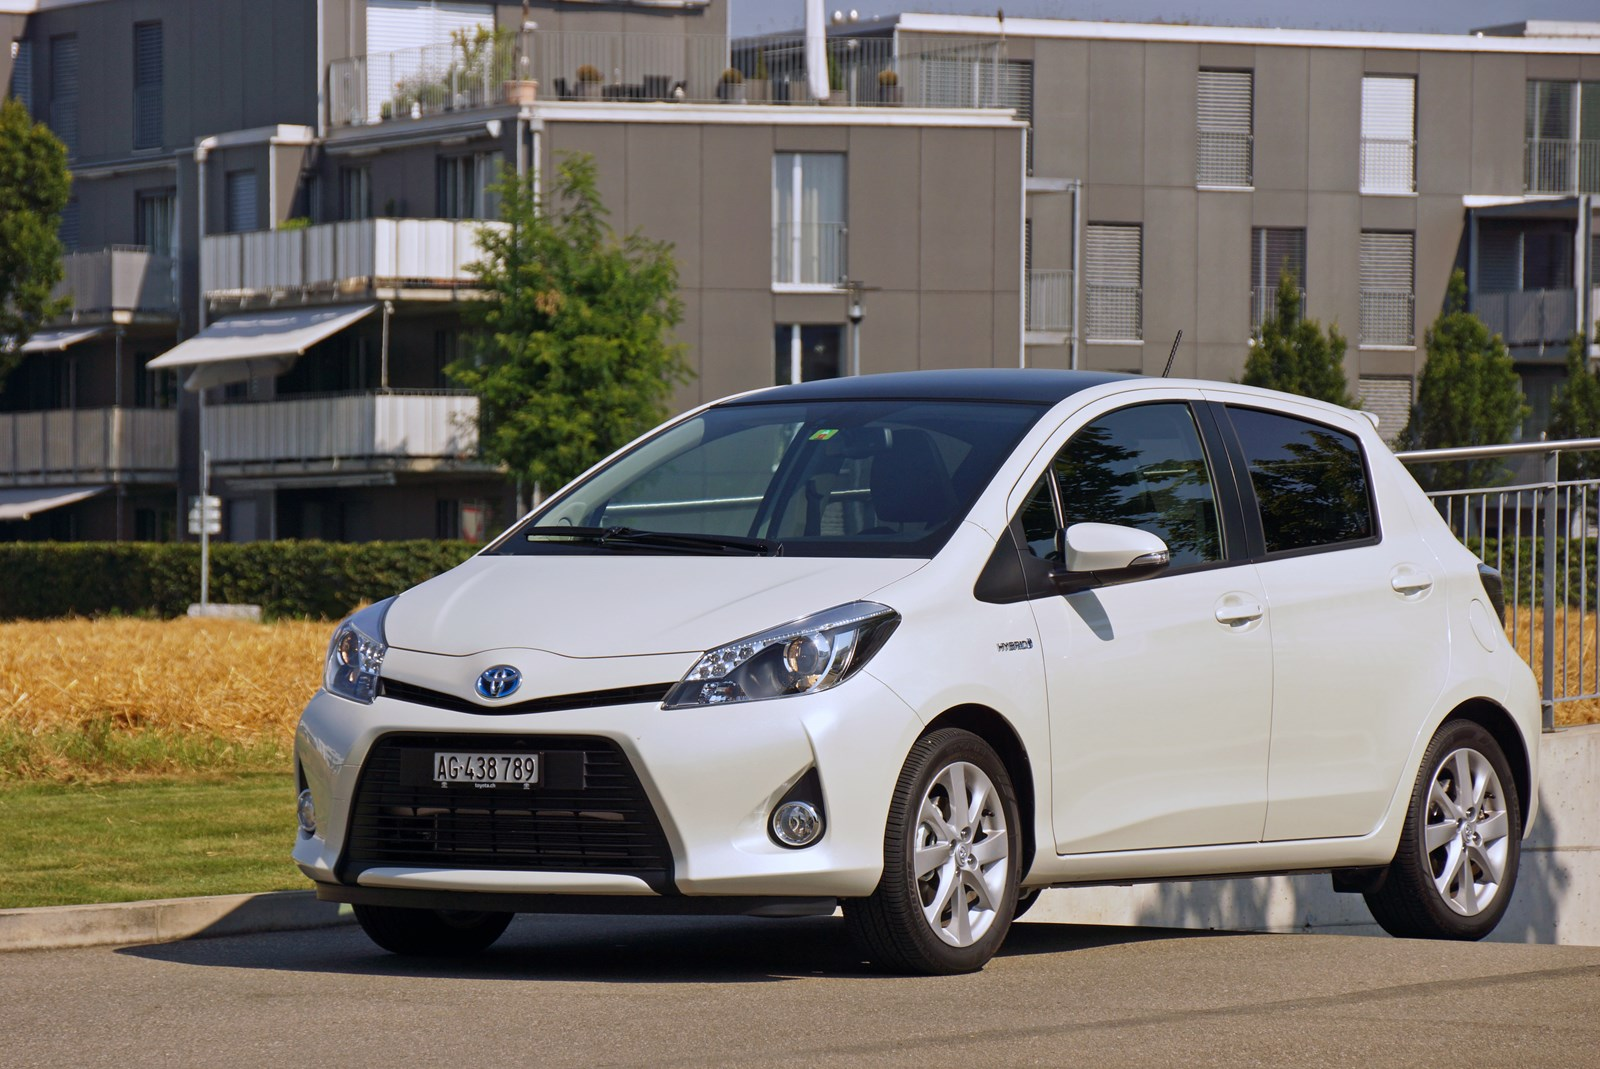 toyota yaris toyota yaris hybrid 2012 im test. Black Bedroom Furniture Sets. Home Design Ideas